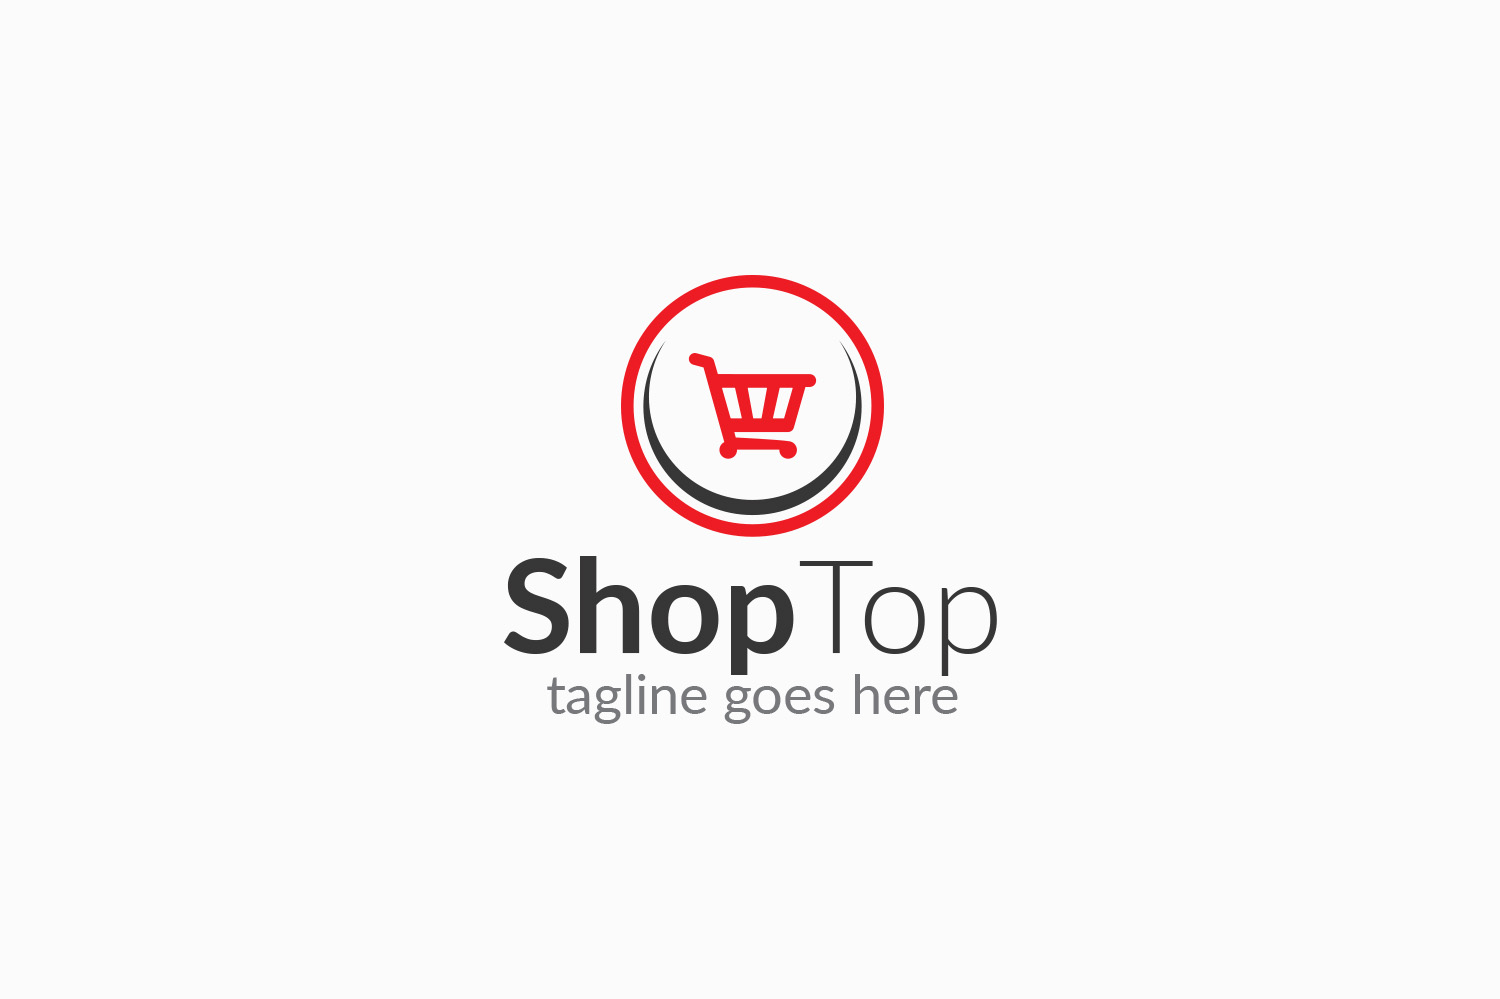 40 Creative Shopping Cart Logo Design examples for your inspiration In this post we have added 40 Best shopping cart logo design examples for your inspiration. Our Favorite logo designs are mix mart, Life Style, Eco shopping, My Shopping cart, The Store and Great Buys.